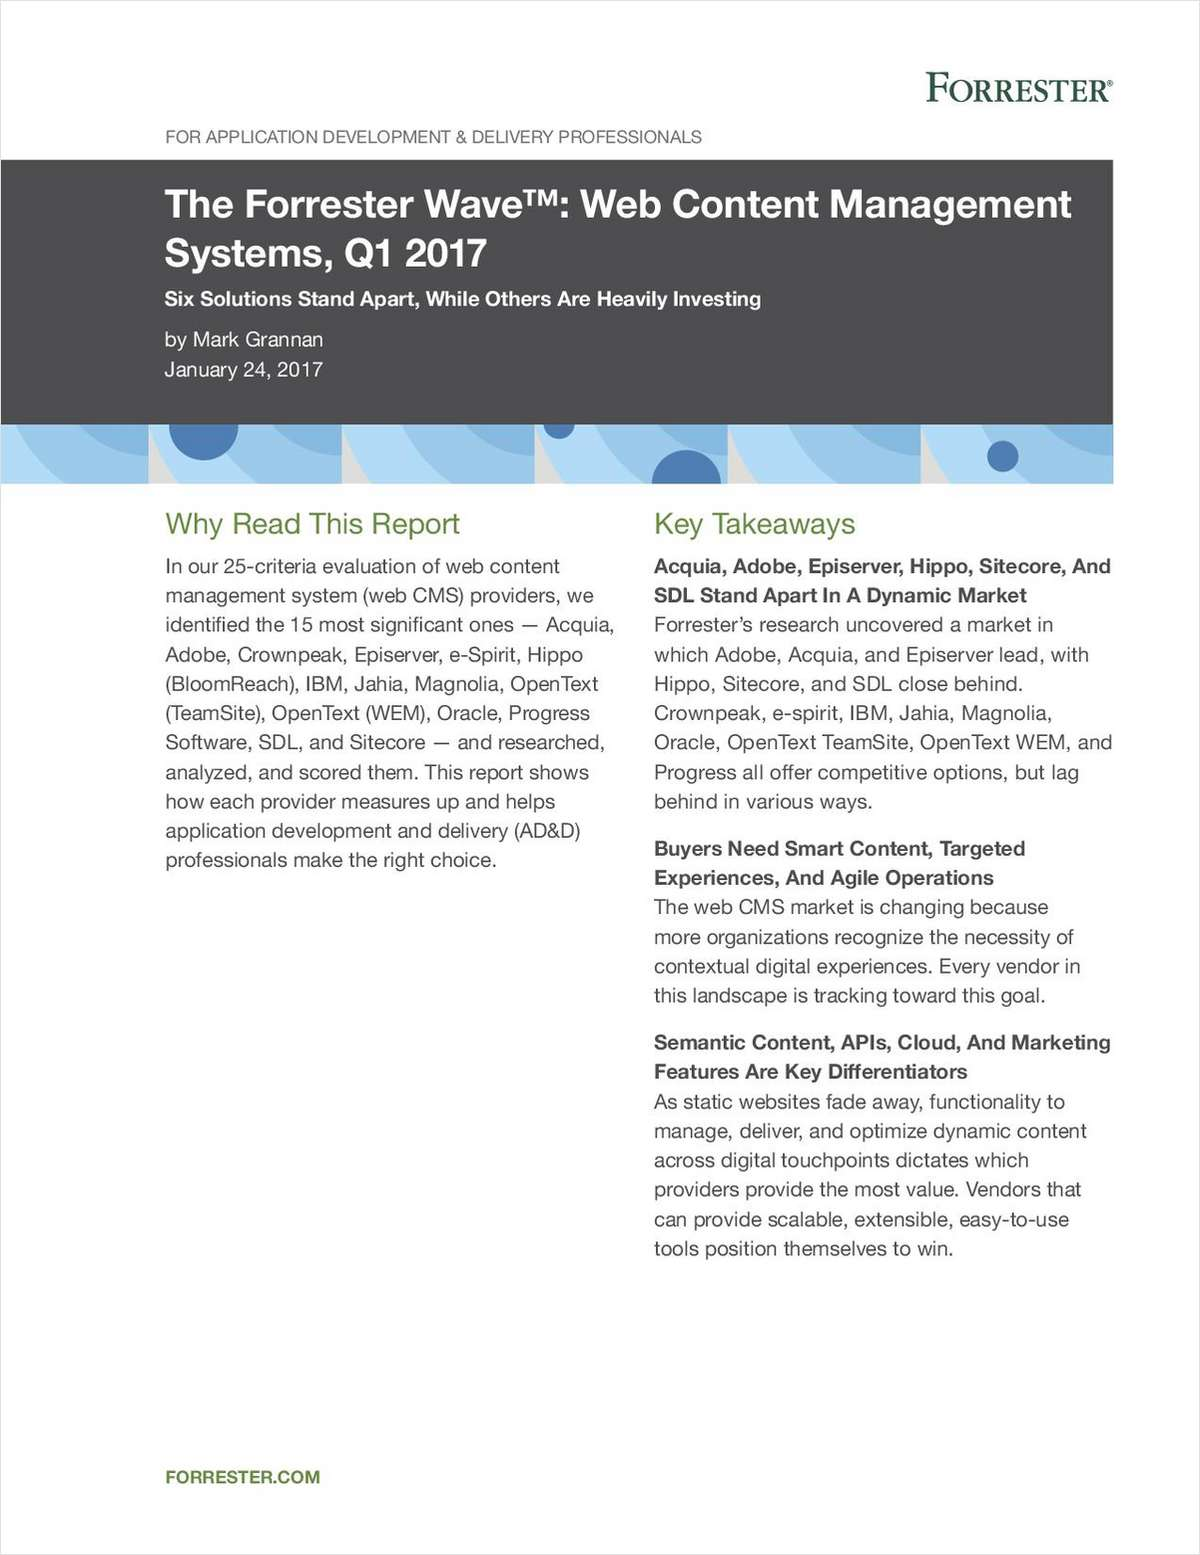 The Forrester Wave™: Web Content Management Systems, Q1 2017